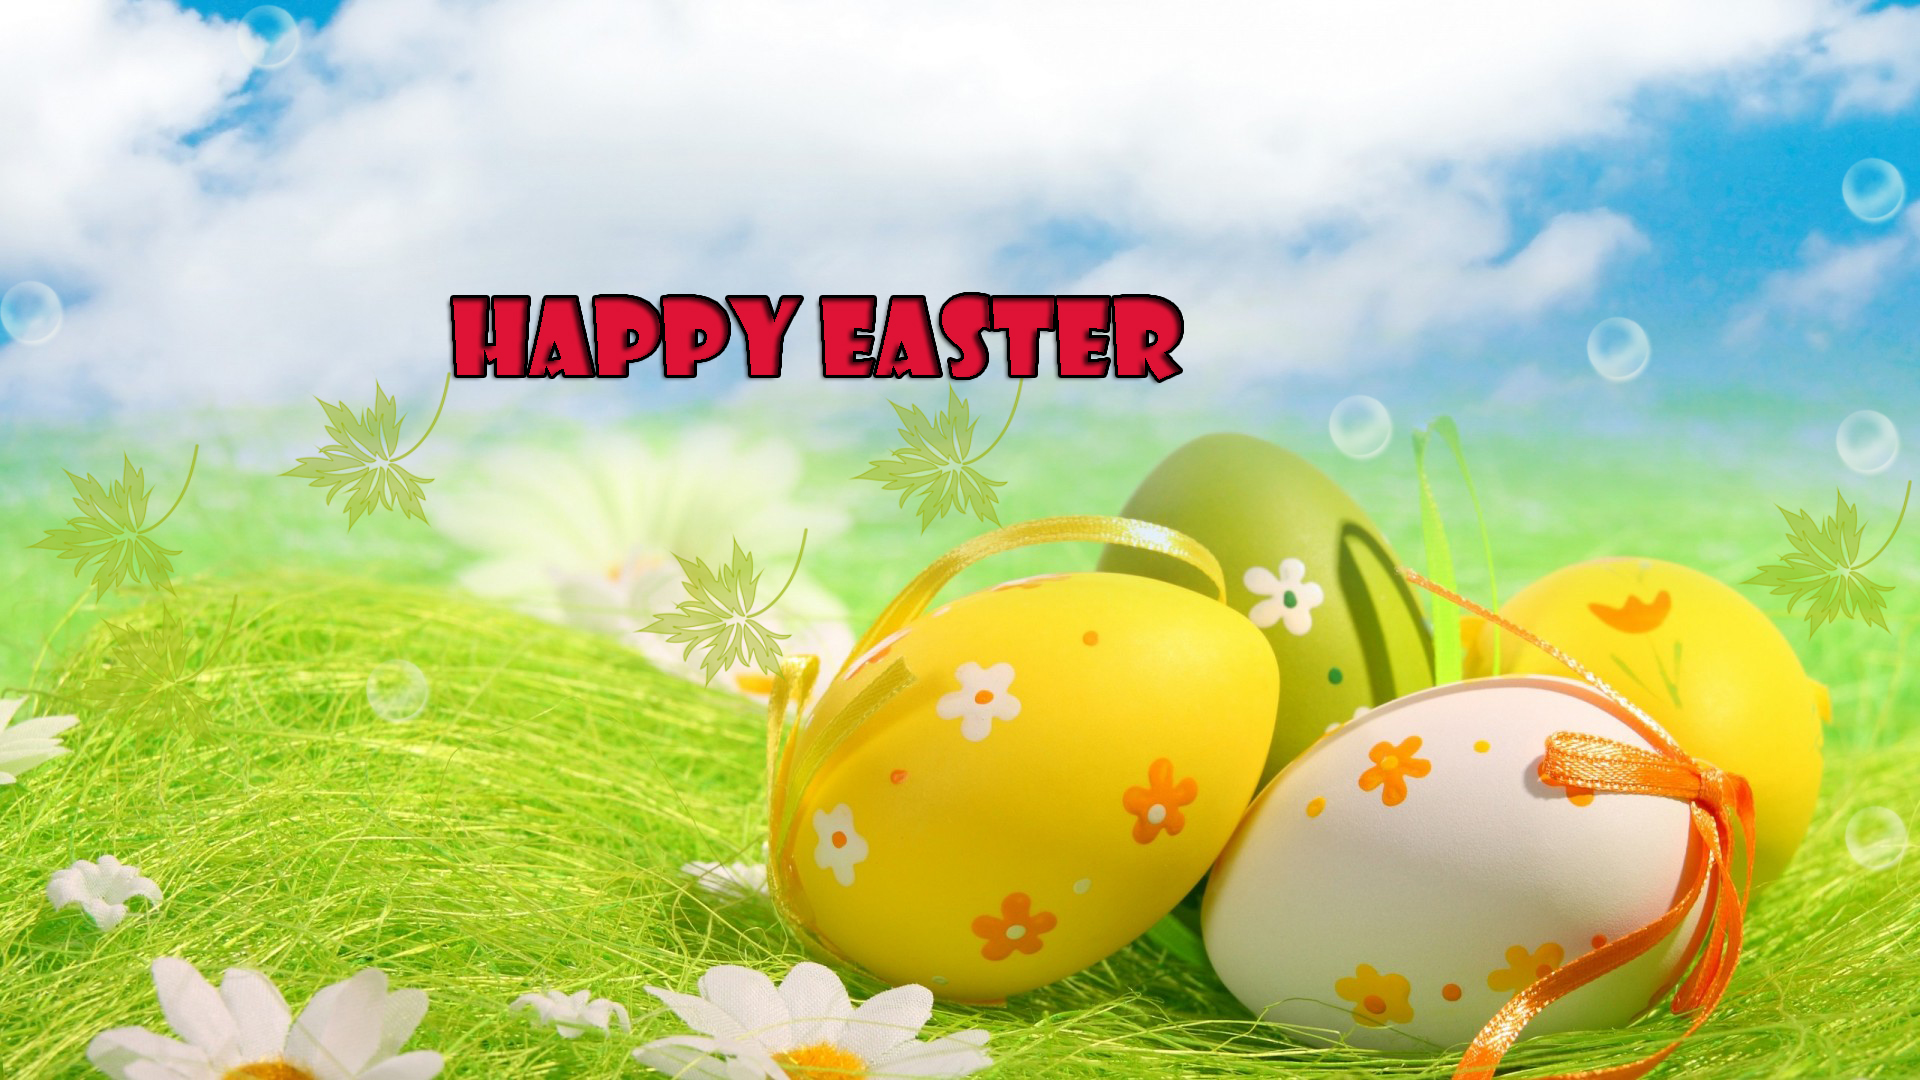 beautiful-Easter-eggs-wallpaper